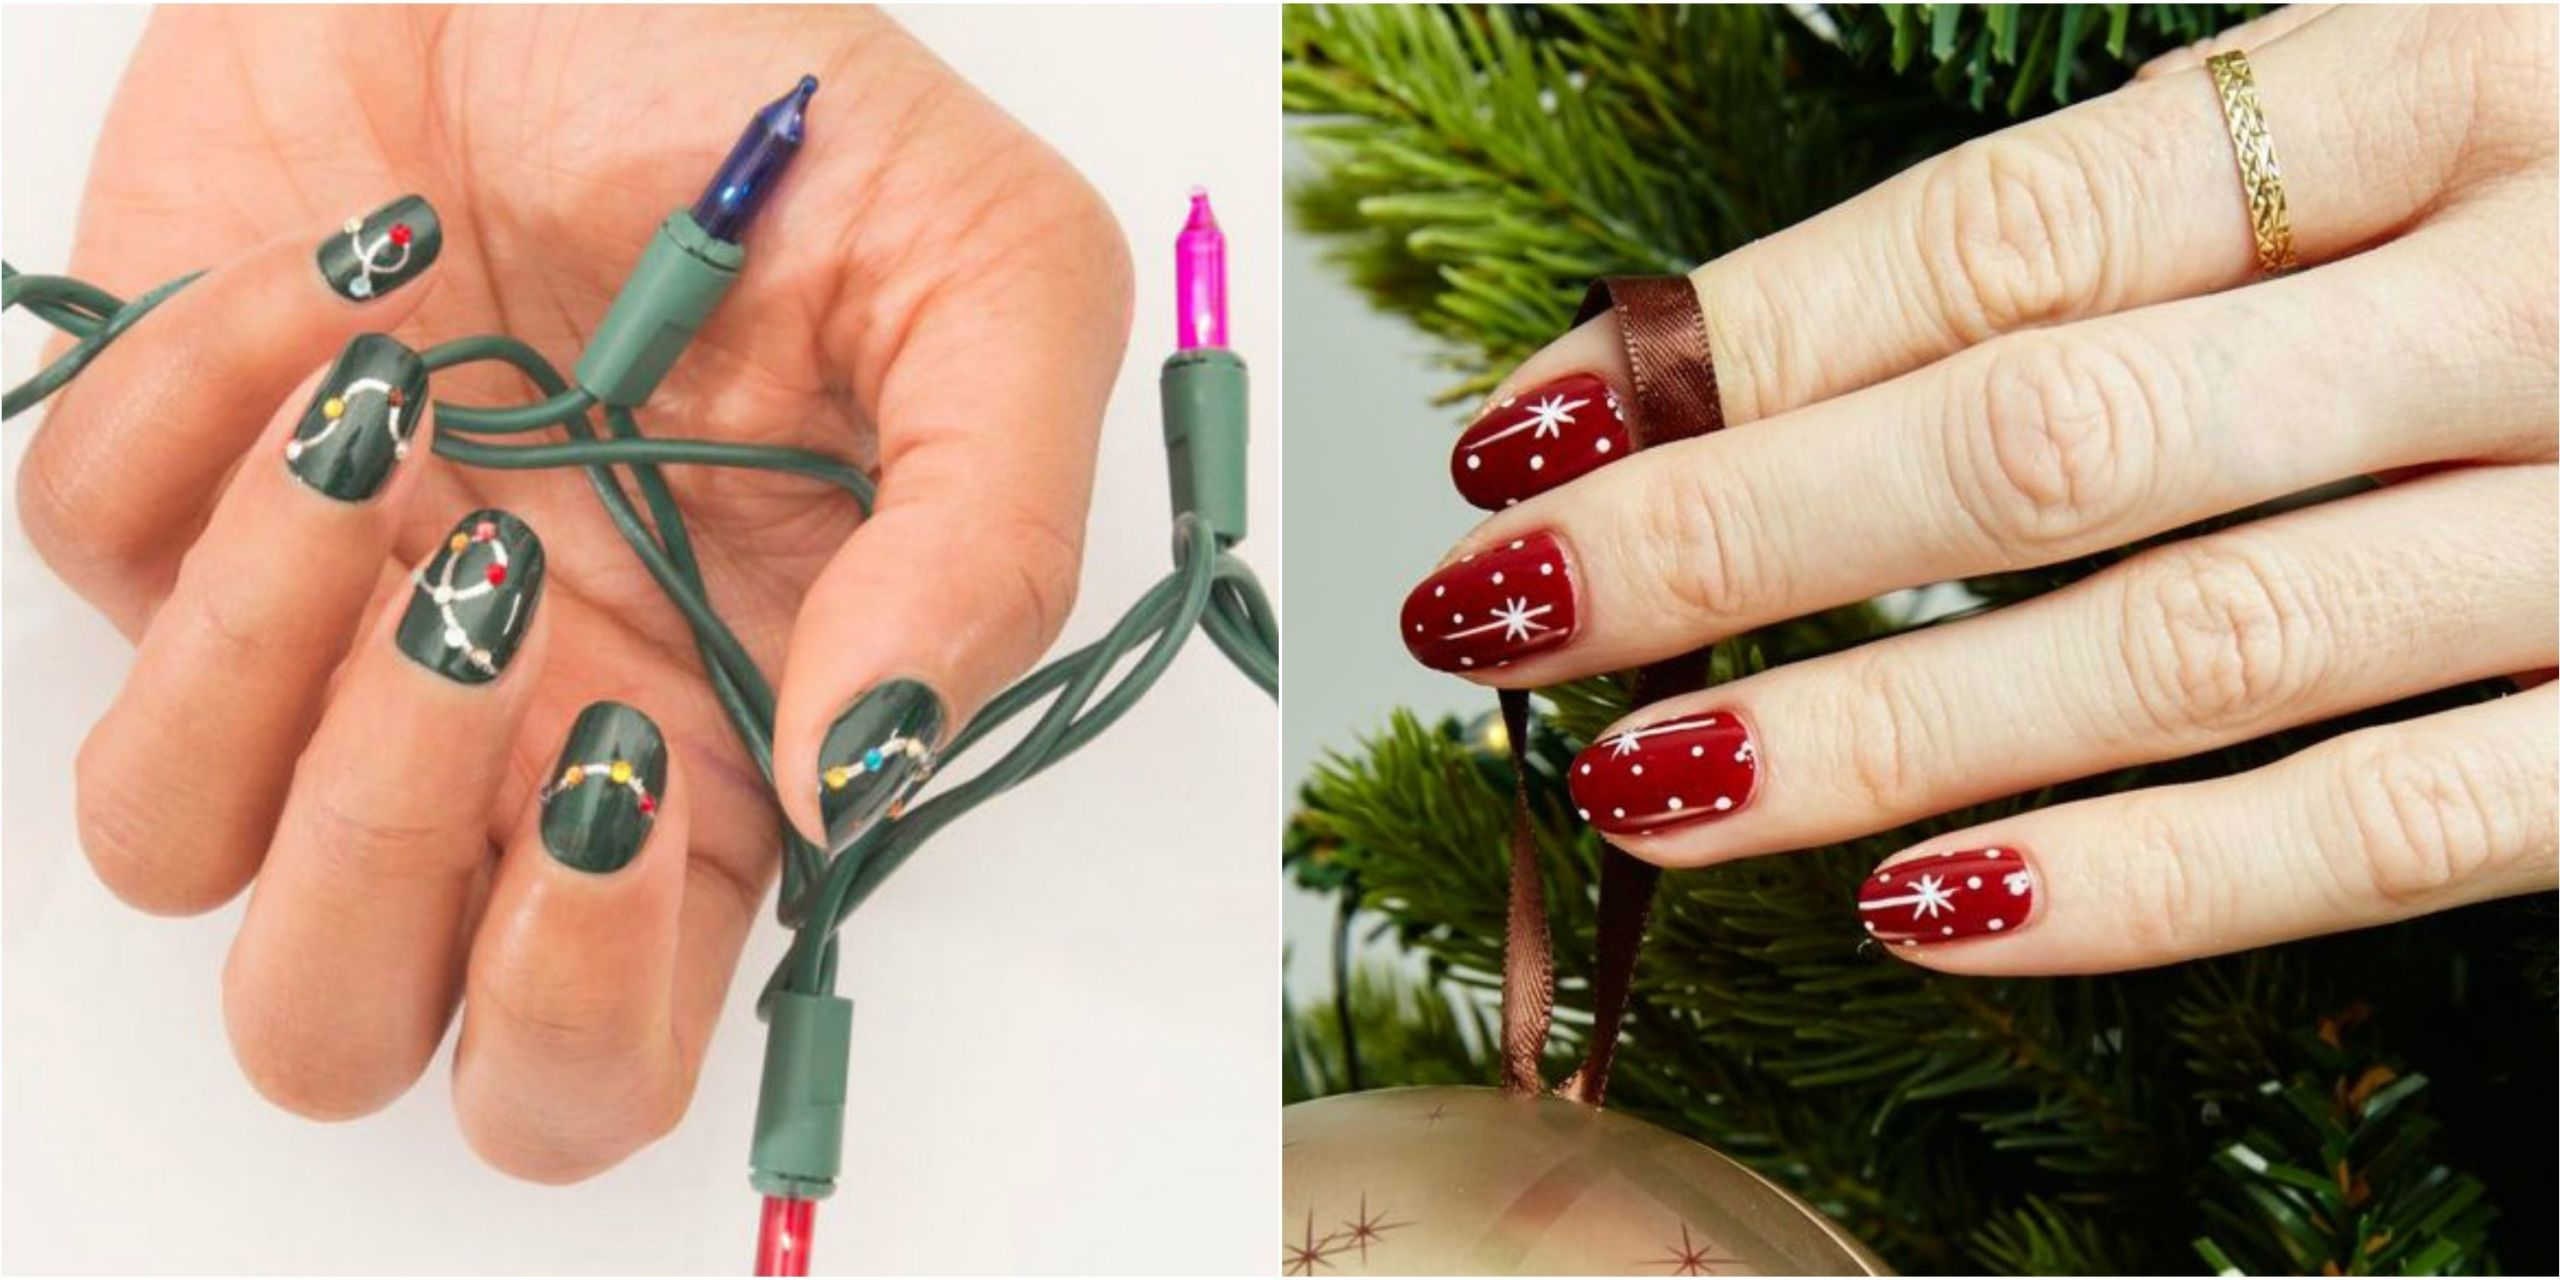 The Stockings Are Hung By The Mantle With Care U2014 And Your Nails Are  Polished To Festive Perfection. Find Manicure Design Inspo That Highlights  Every Symbol ...